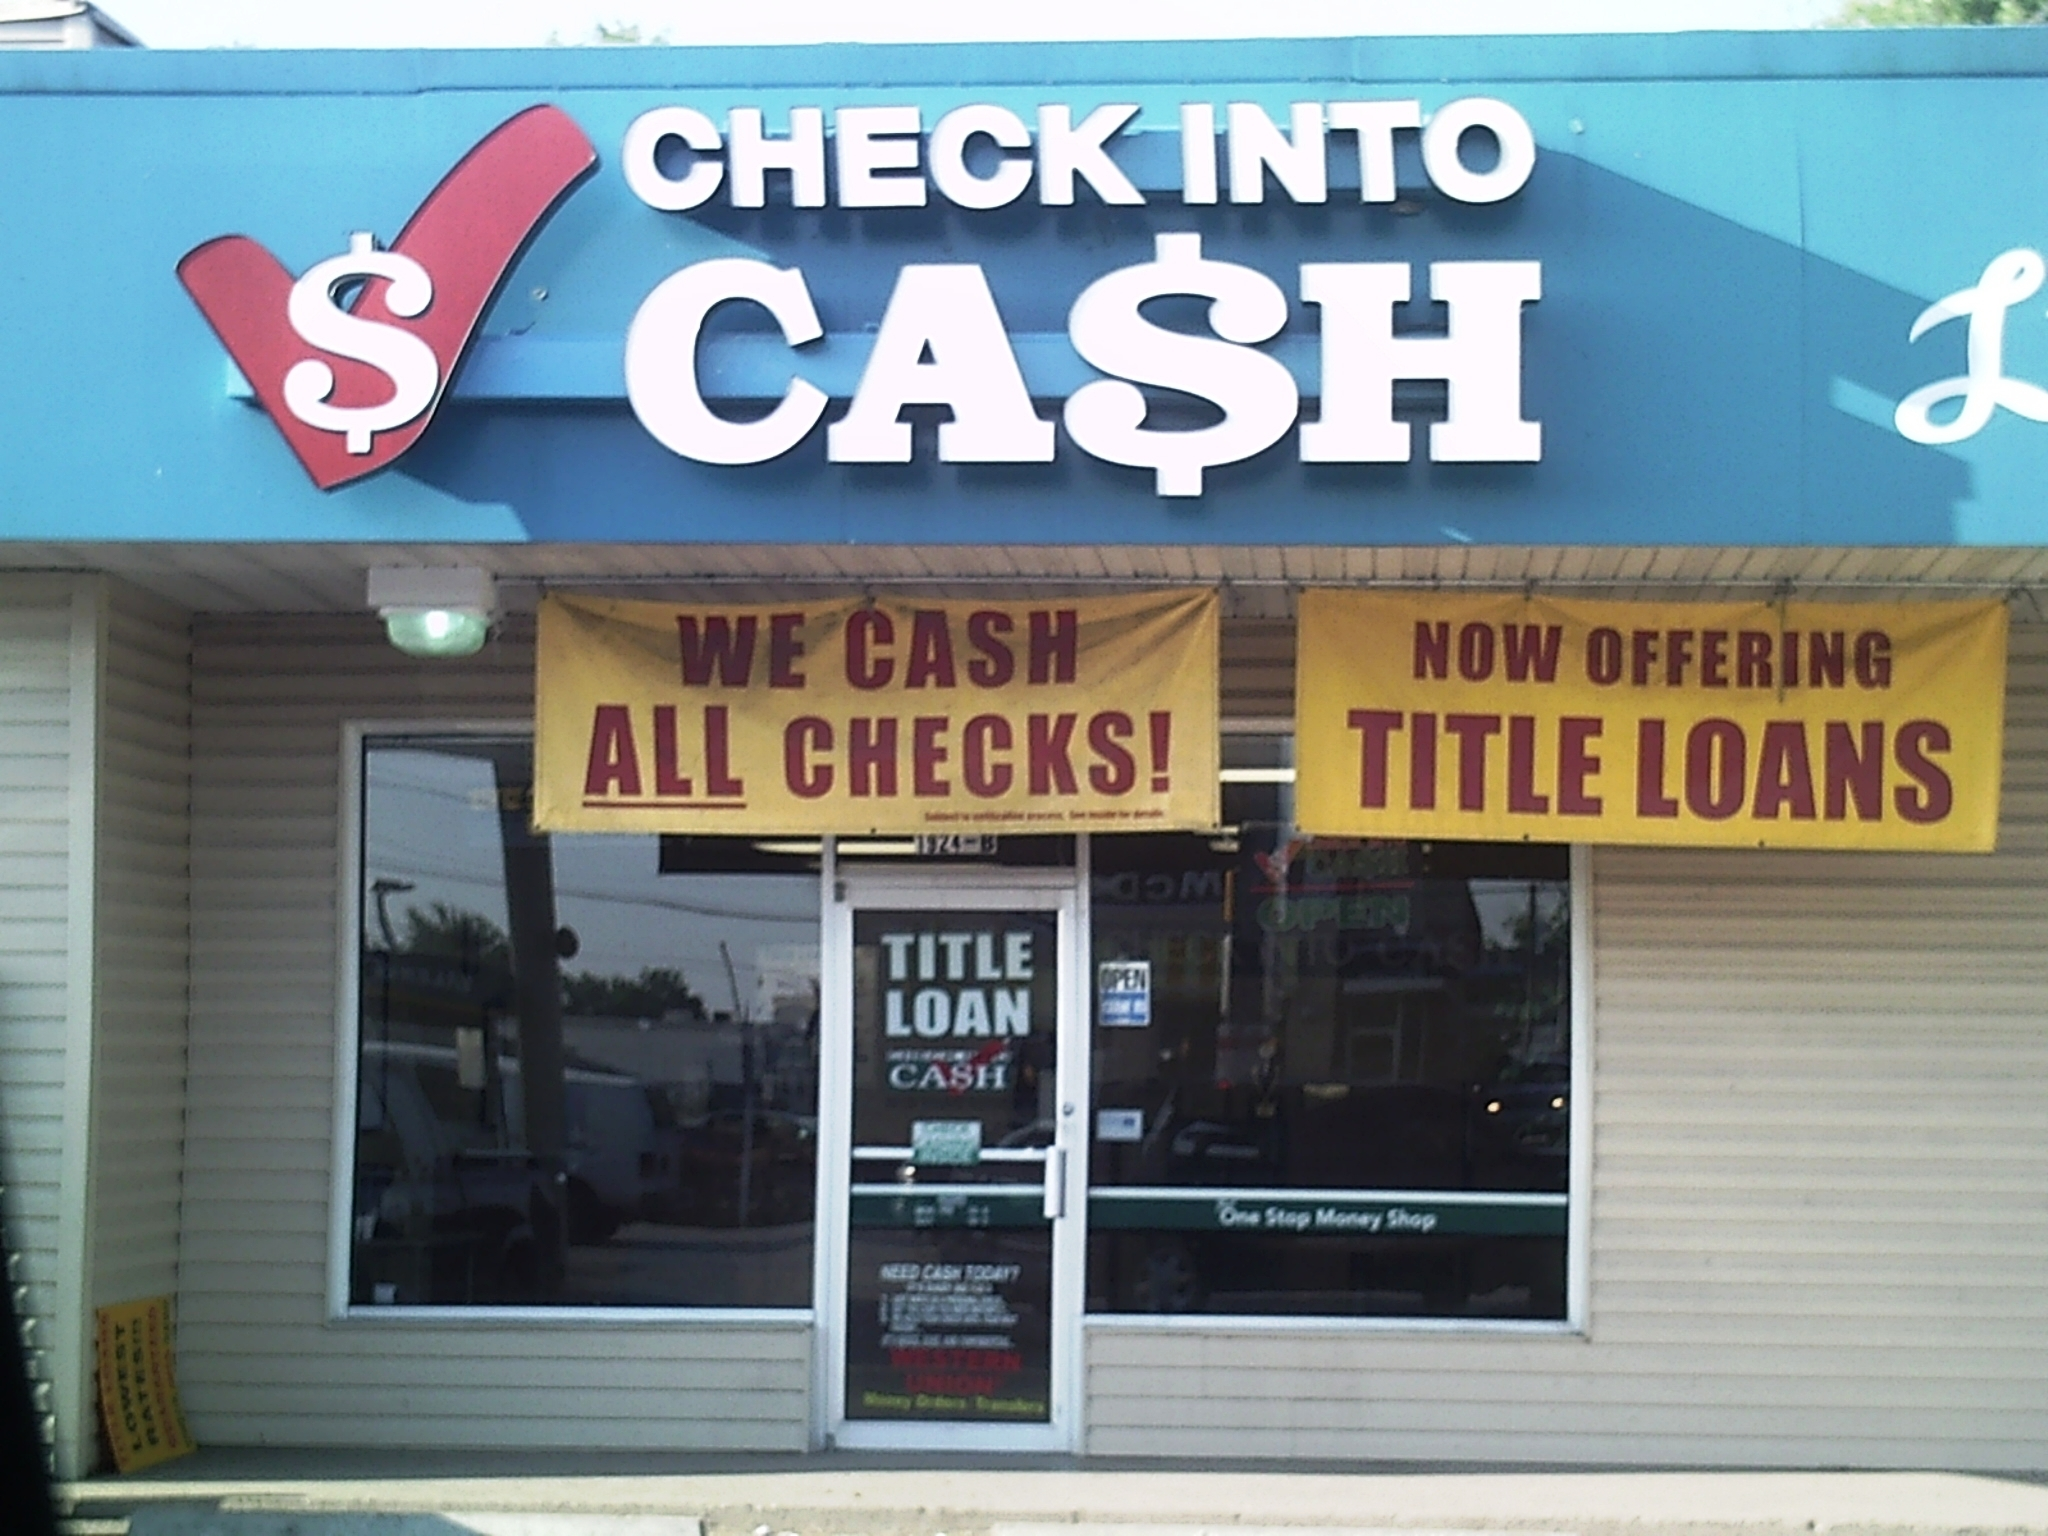 Payday Loans are also commonly referred to as Cash Advance, Payday Advances, Payday Advance Loans and Fast Cash Loans. Check City does not usually utilize traditional credit checks as part of the payday loan approval process.